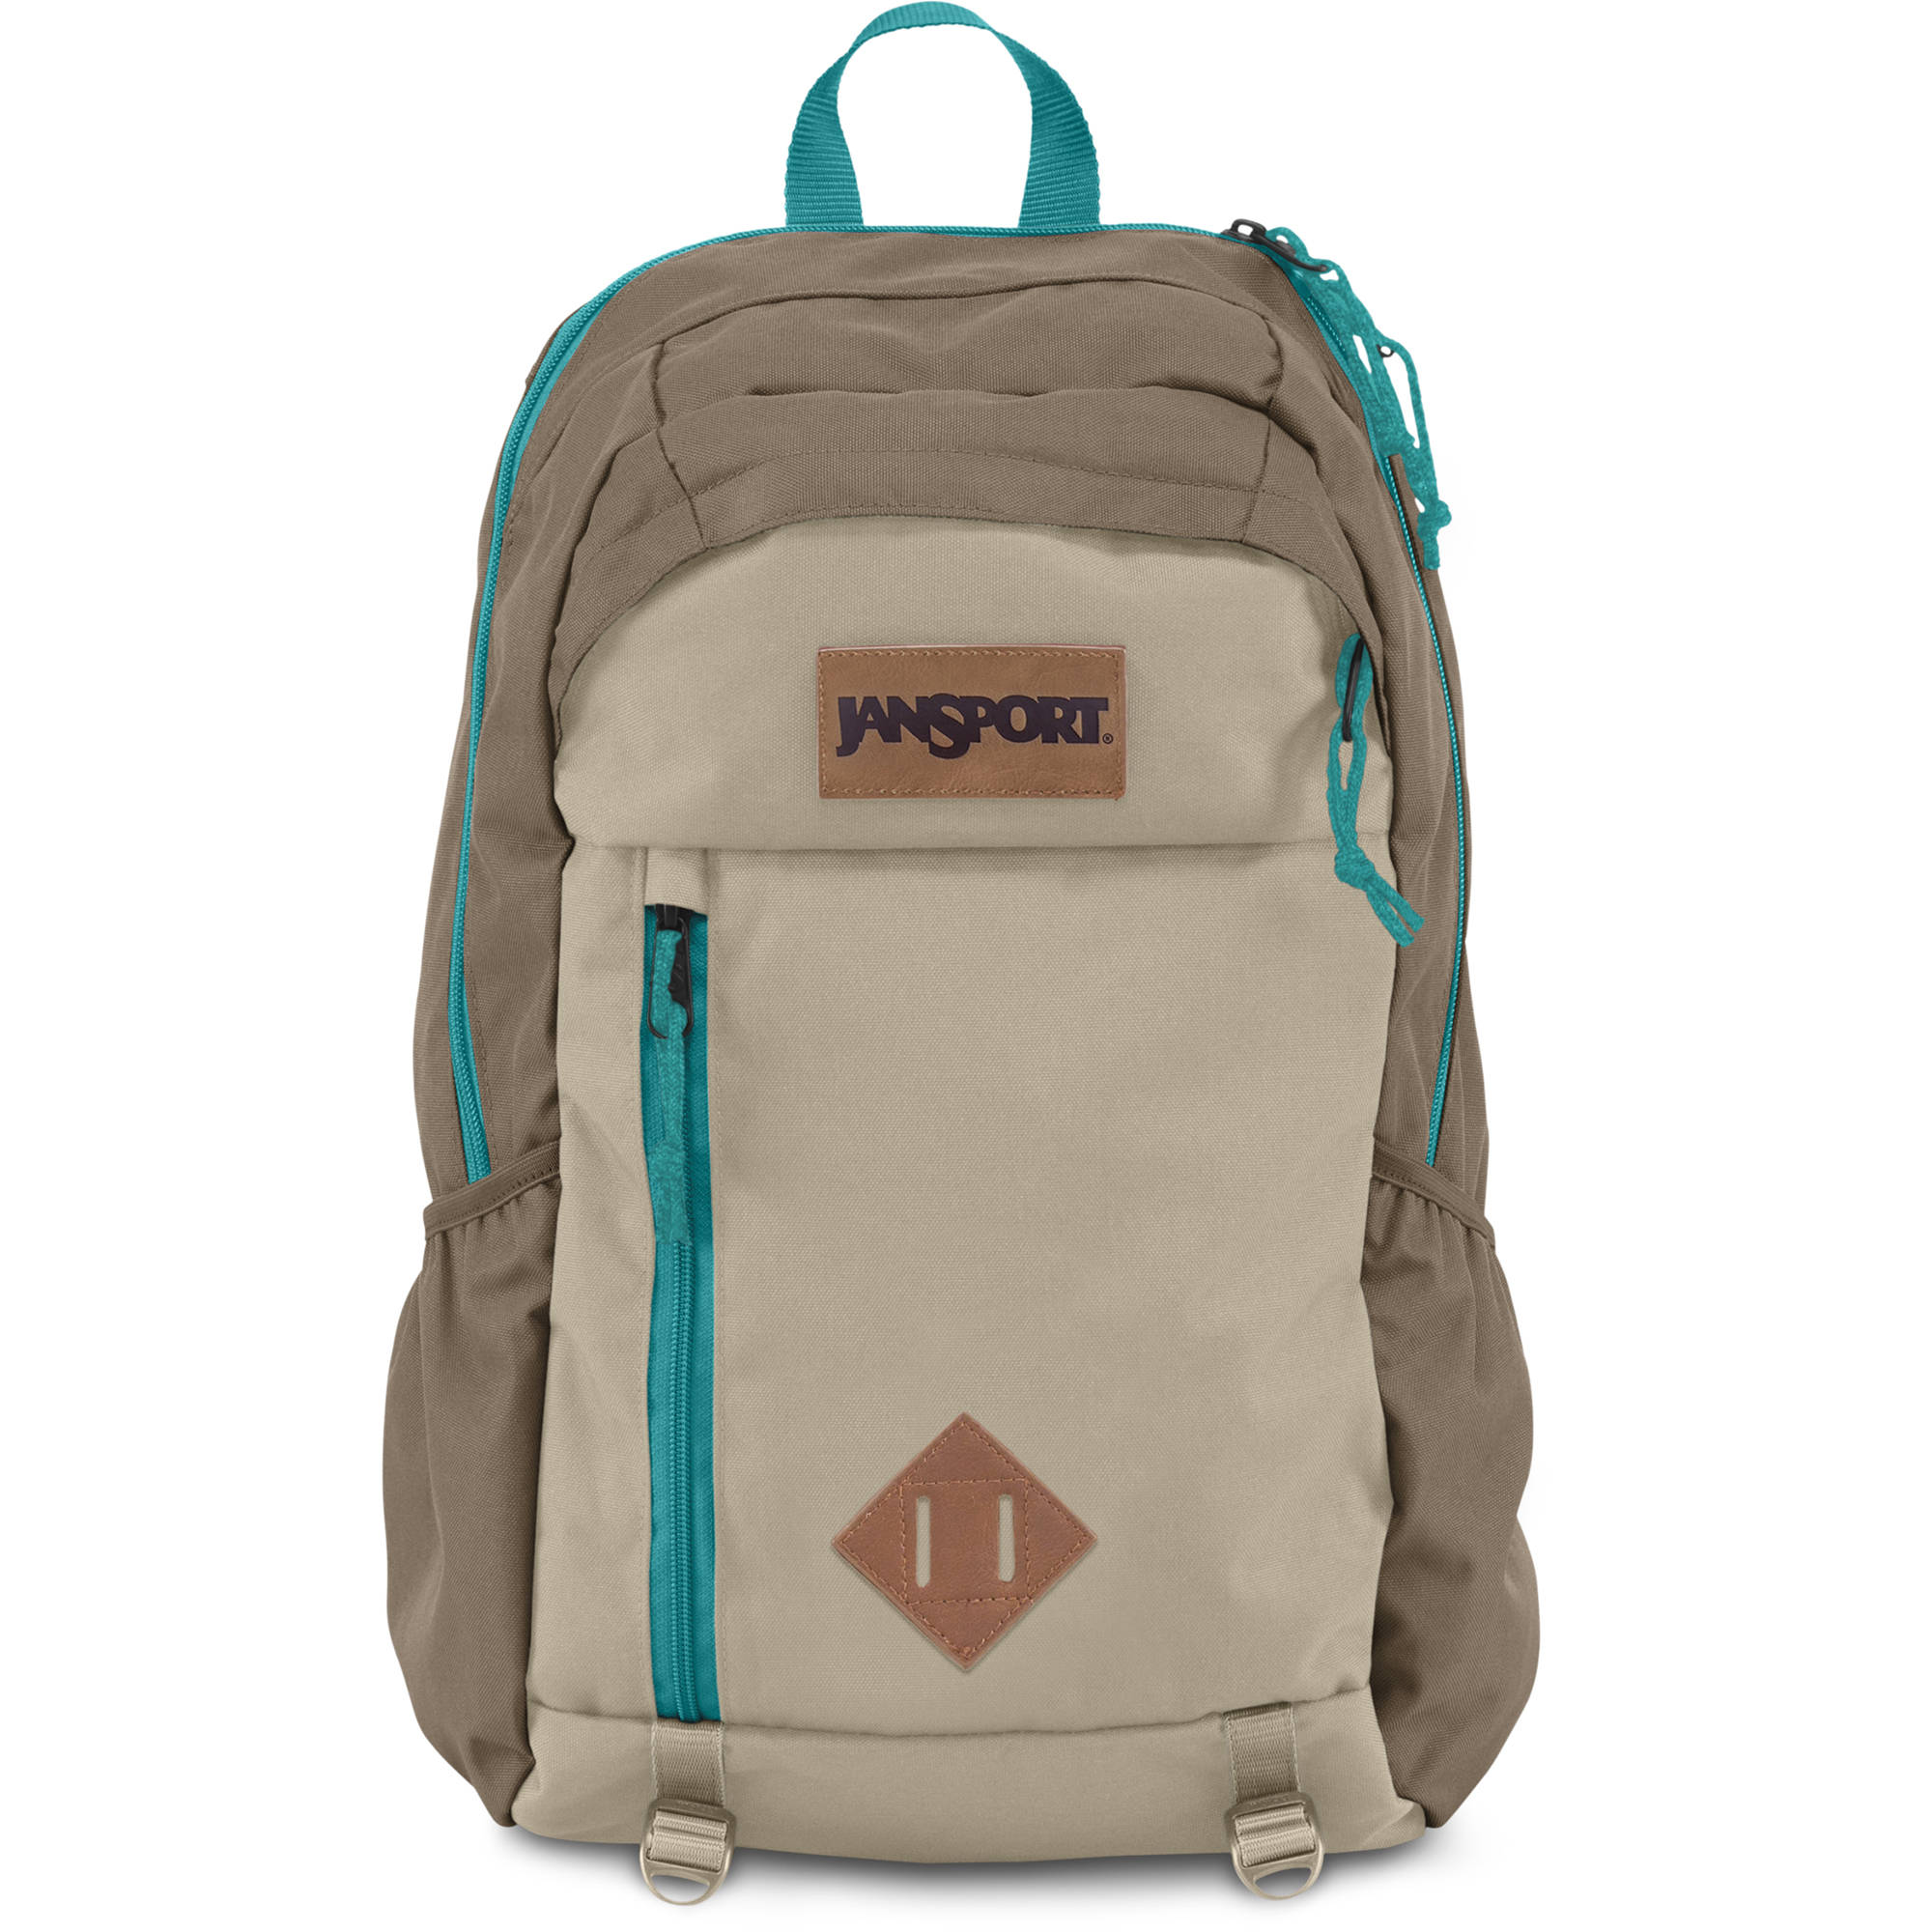 Jansport Backpacks Philippines - Backpack Her